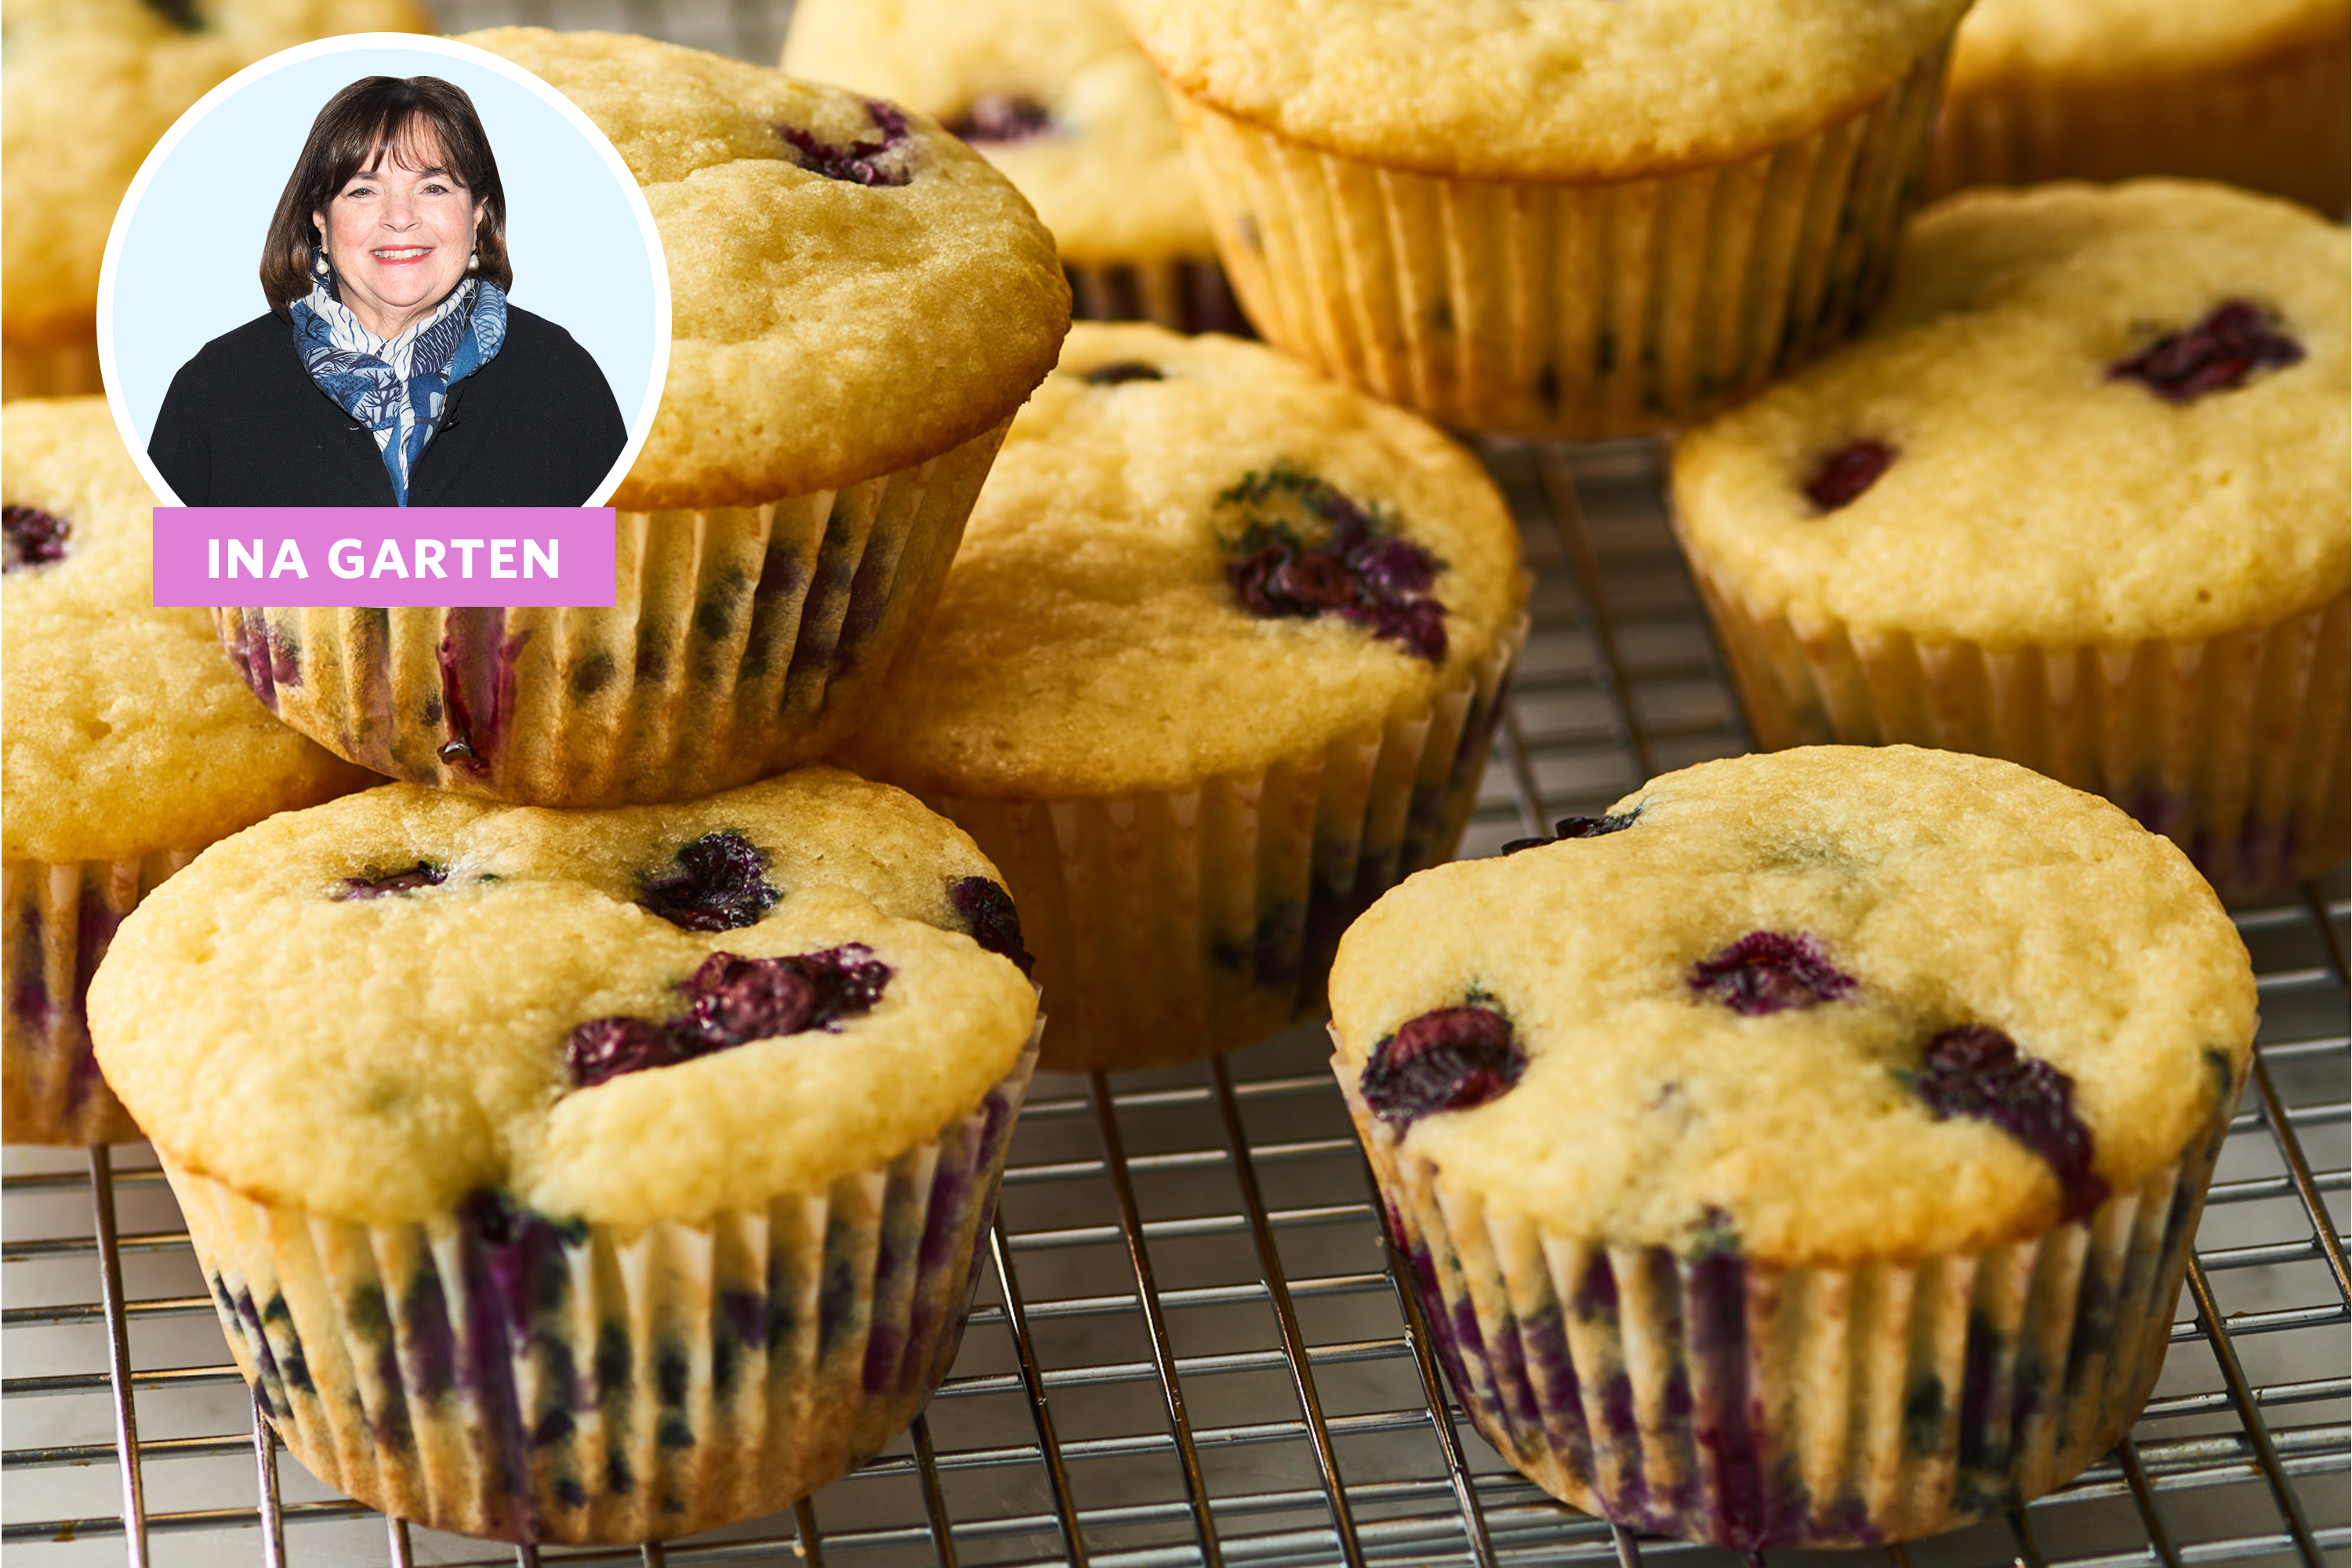 I Tried Ina Garten's Blueberry Muffin Recipe | Kitchn